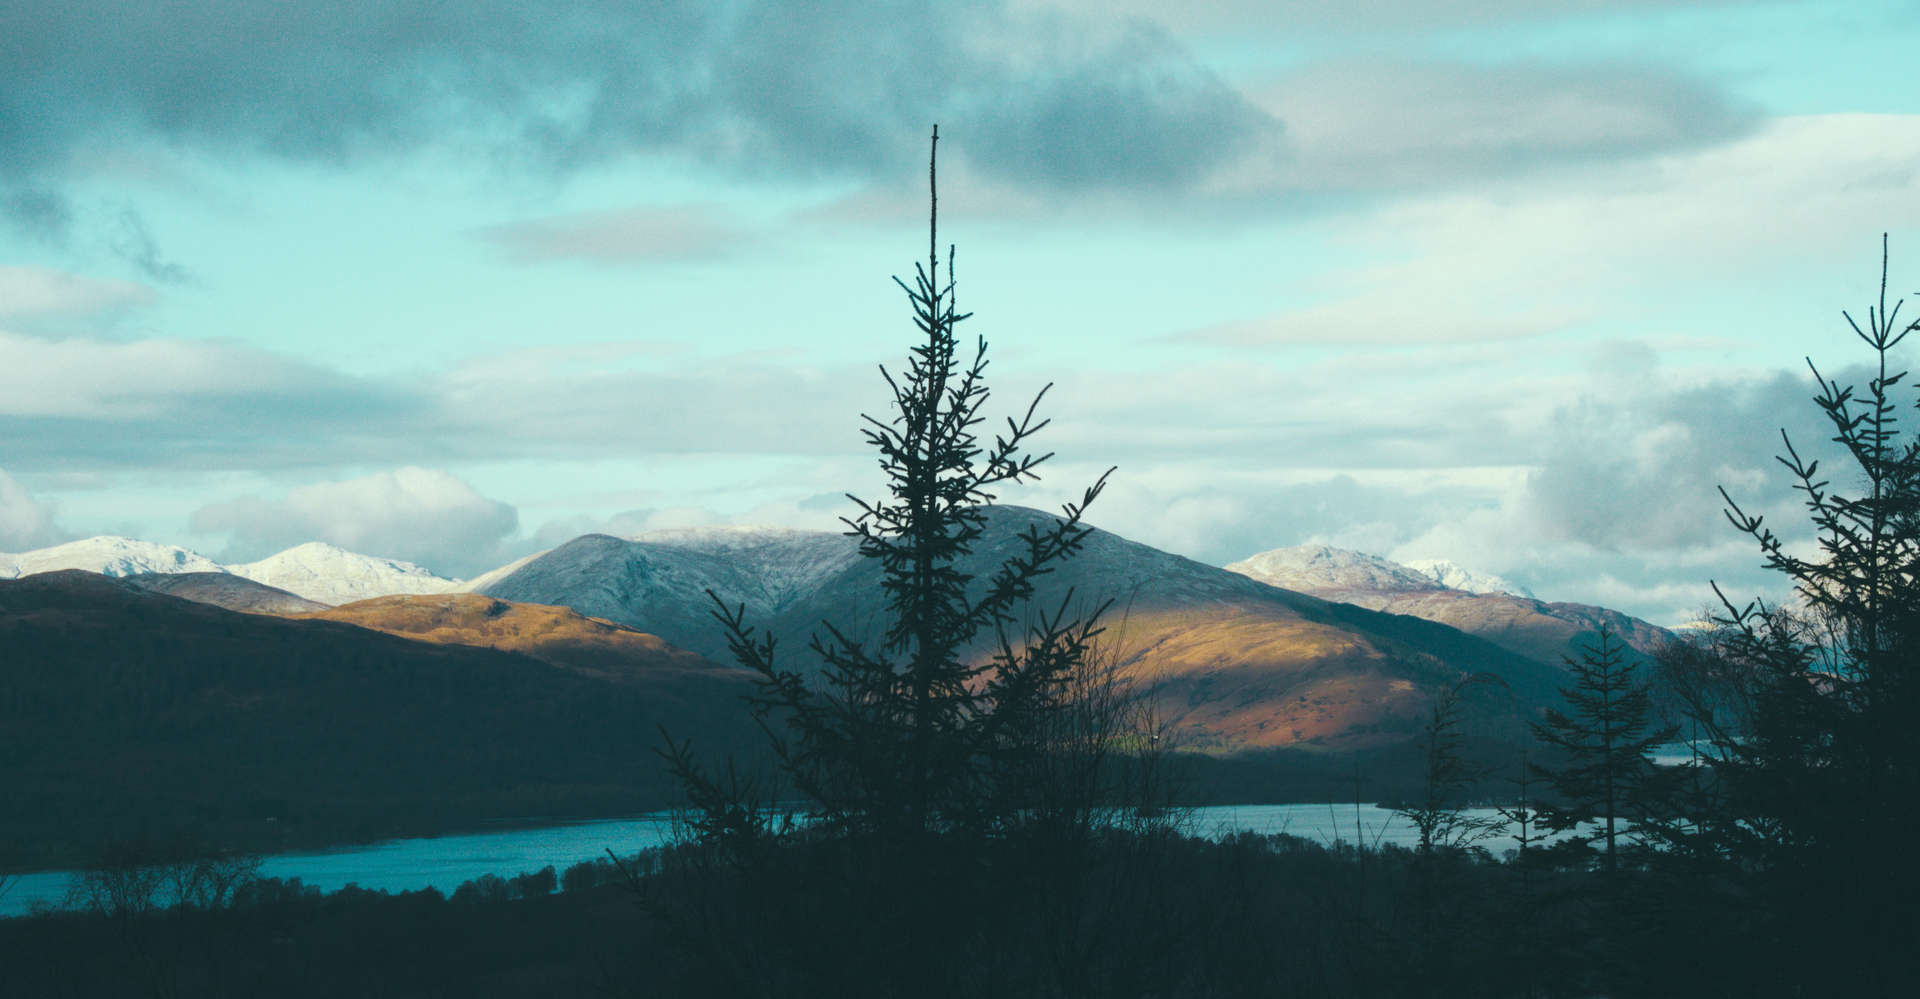 mountains and sky in scotland